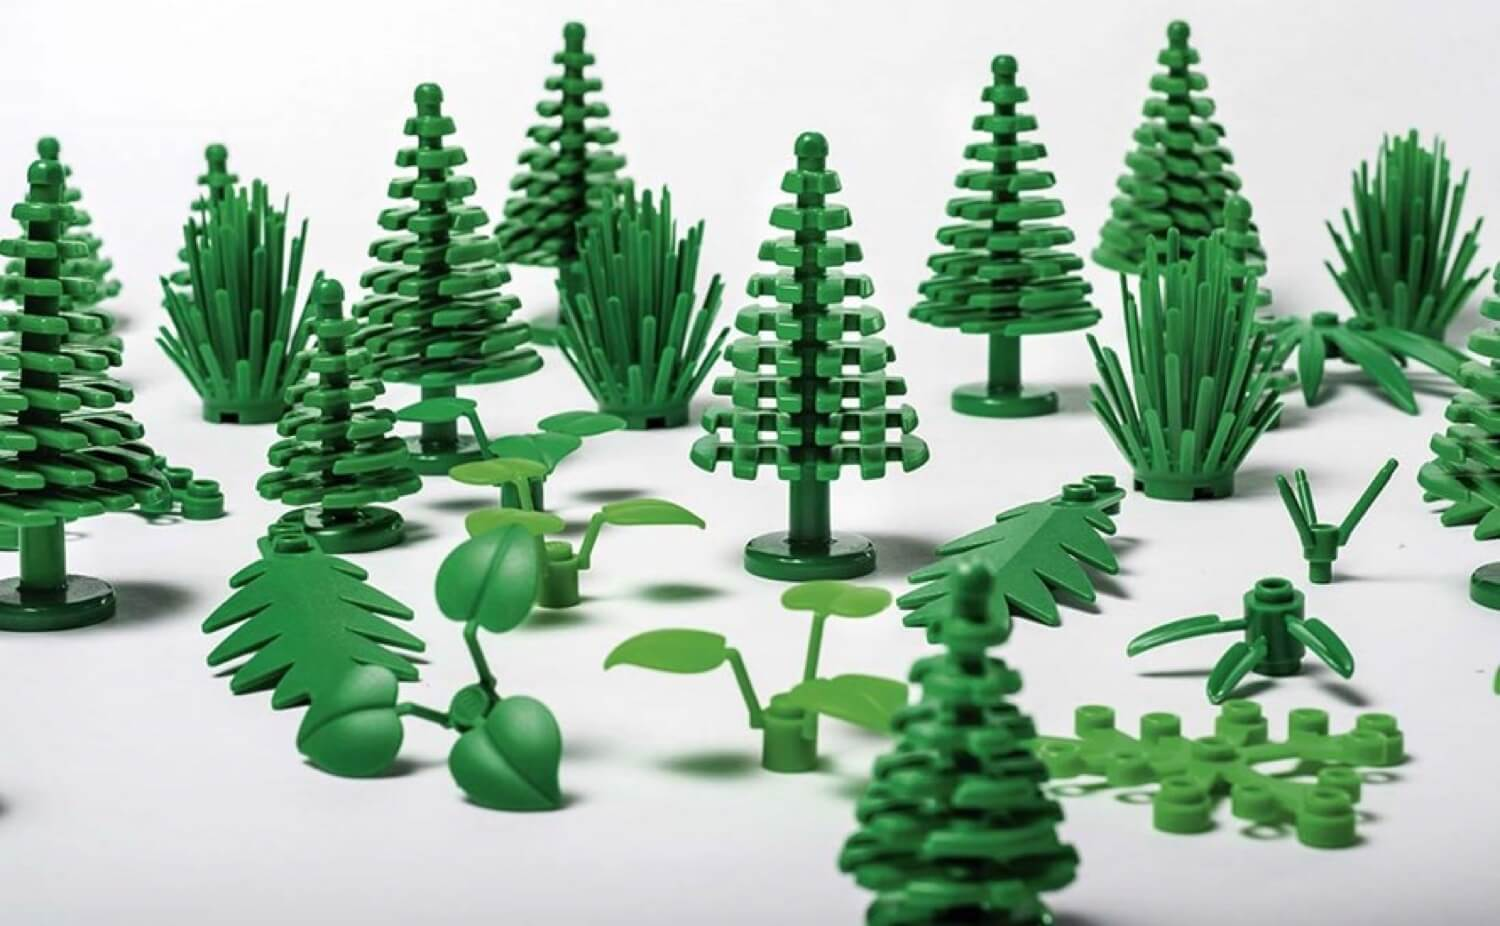 LEGO started making blocks of plants